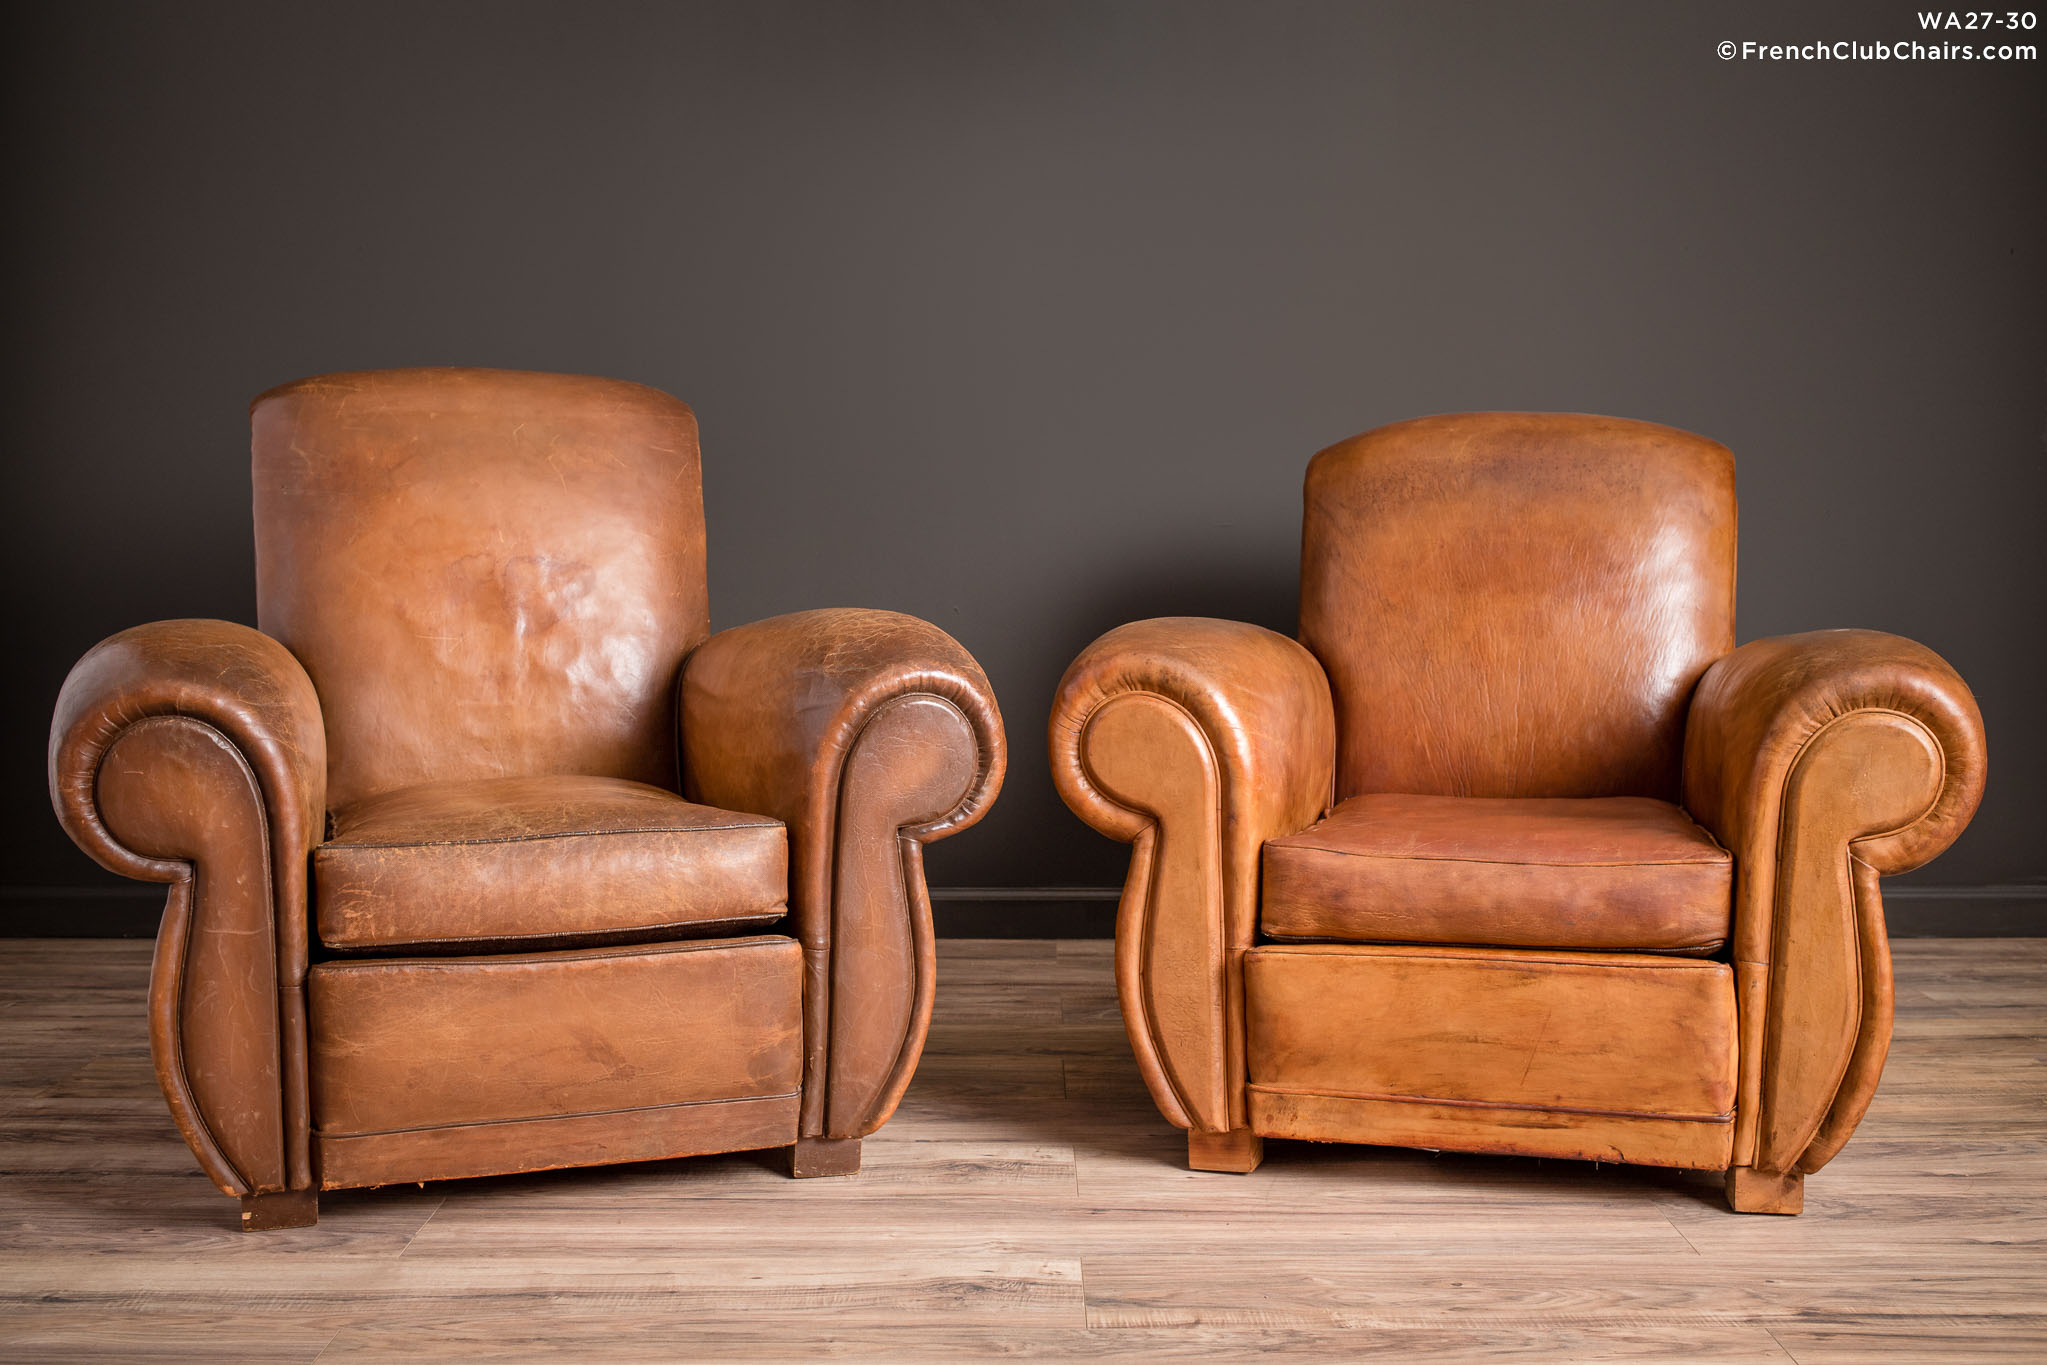 WA_27-30_Giant_Flare_Rollback_Pair_R_1TQ-v01-williams-antiks-leather-french-club-chair-wa_fcccom